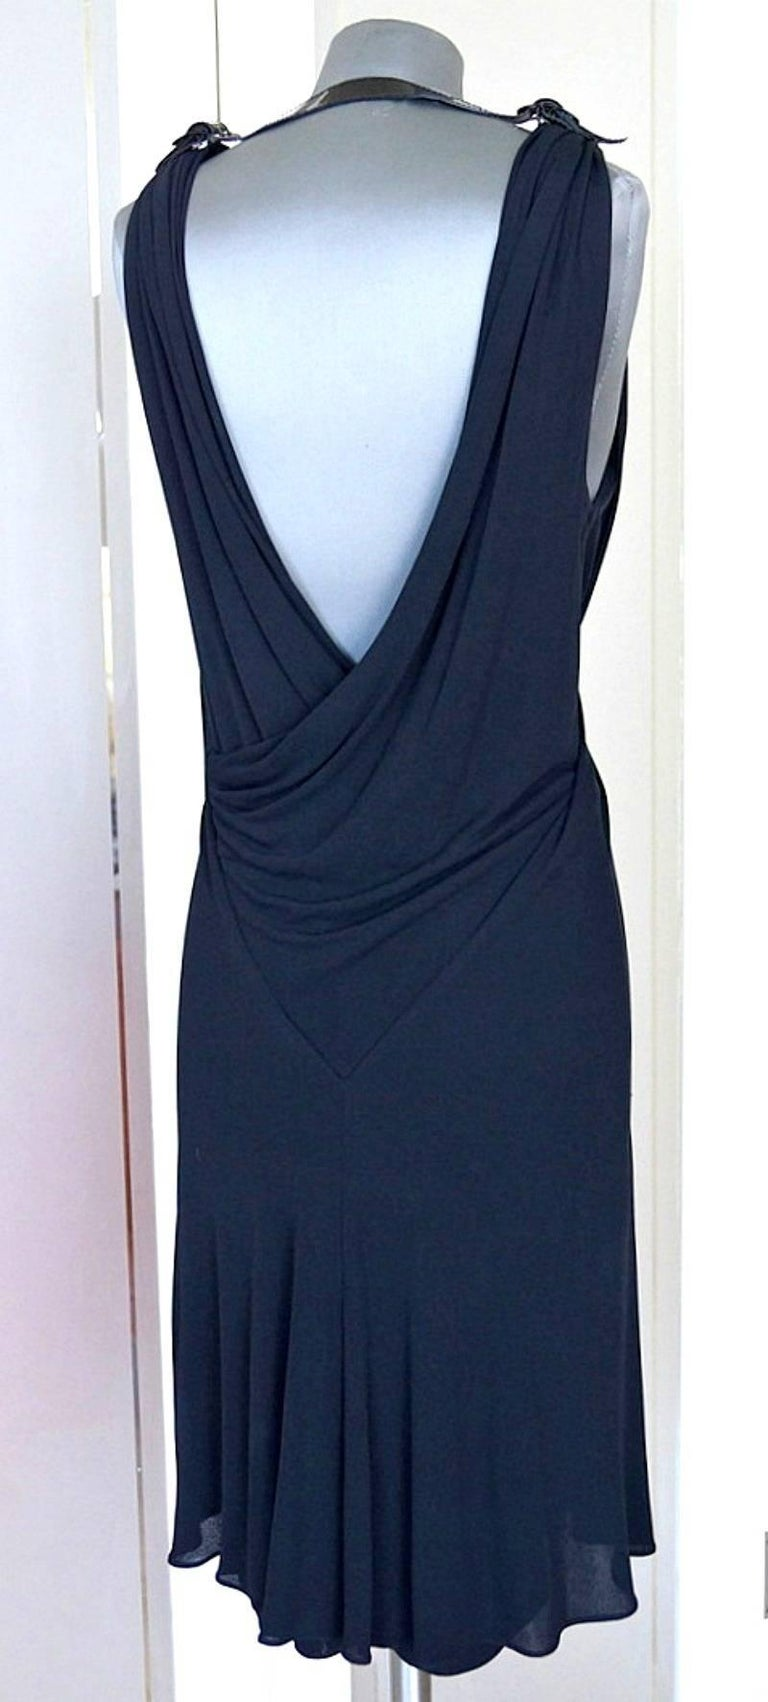 Jean Paul Gaultier Dress Faux Wrap Backless Leather and Buckle Detail 44 / 8 3